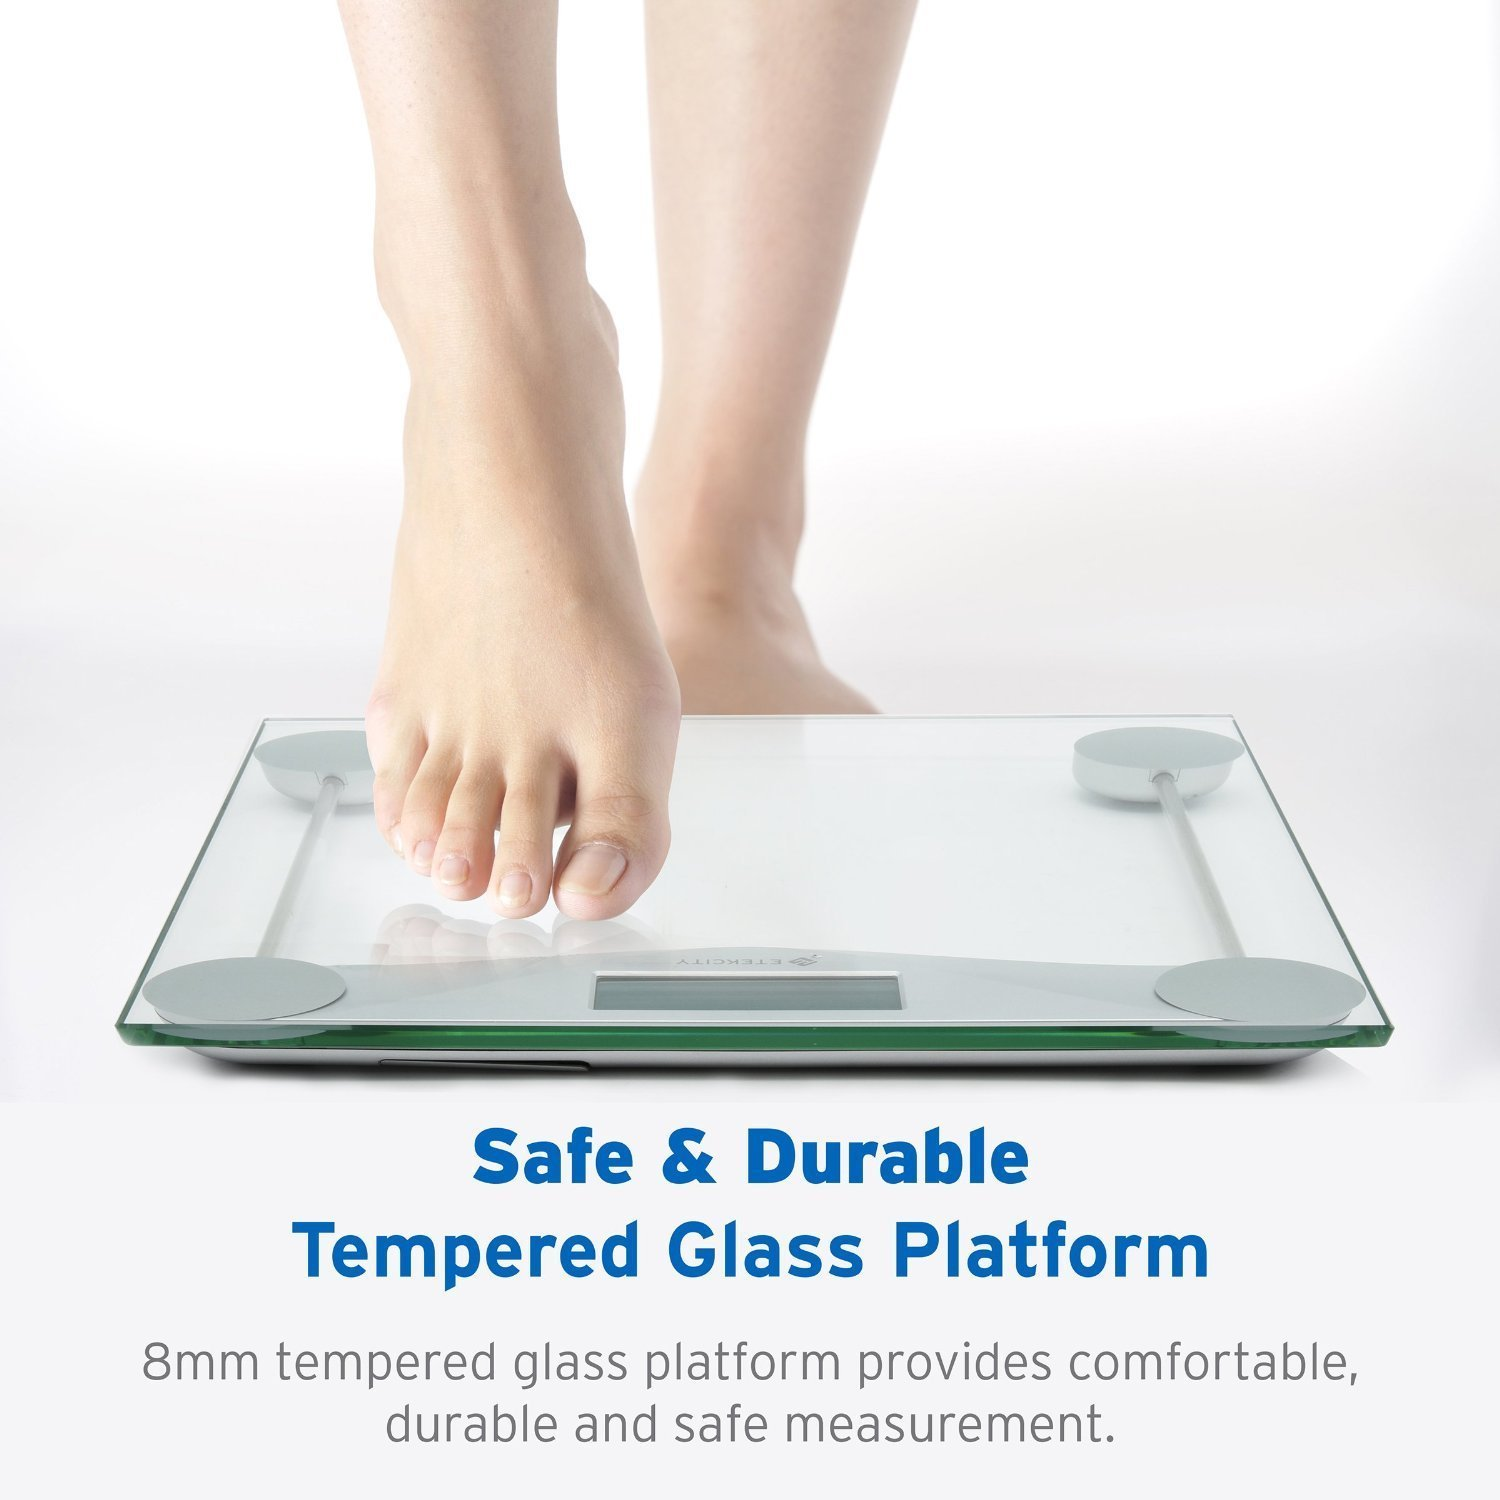 Digital bathroom scale digital body scale body weight scale digital - Amazon Com Etekcity Digital Body Weight Bathroom Scale With Body Tape Measure Tempered Glass 400 Pounds Scales Health Personal Care